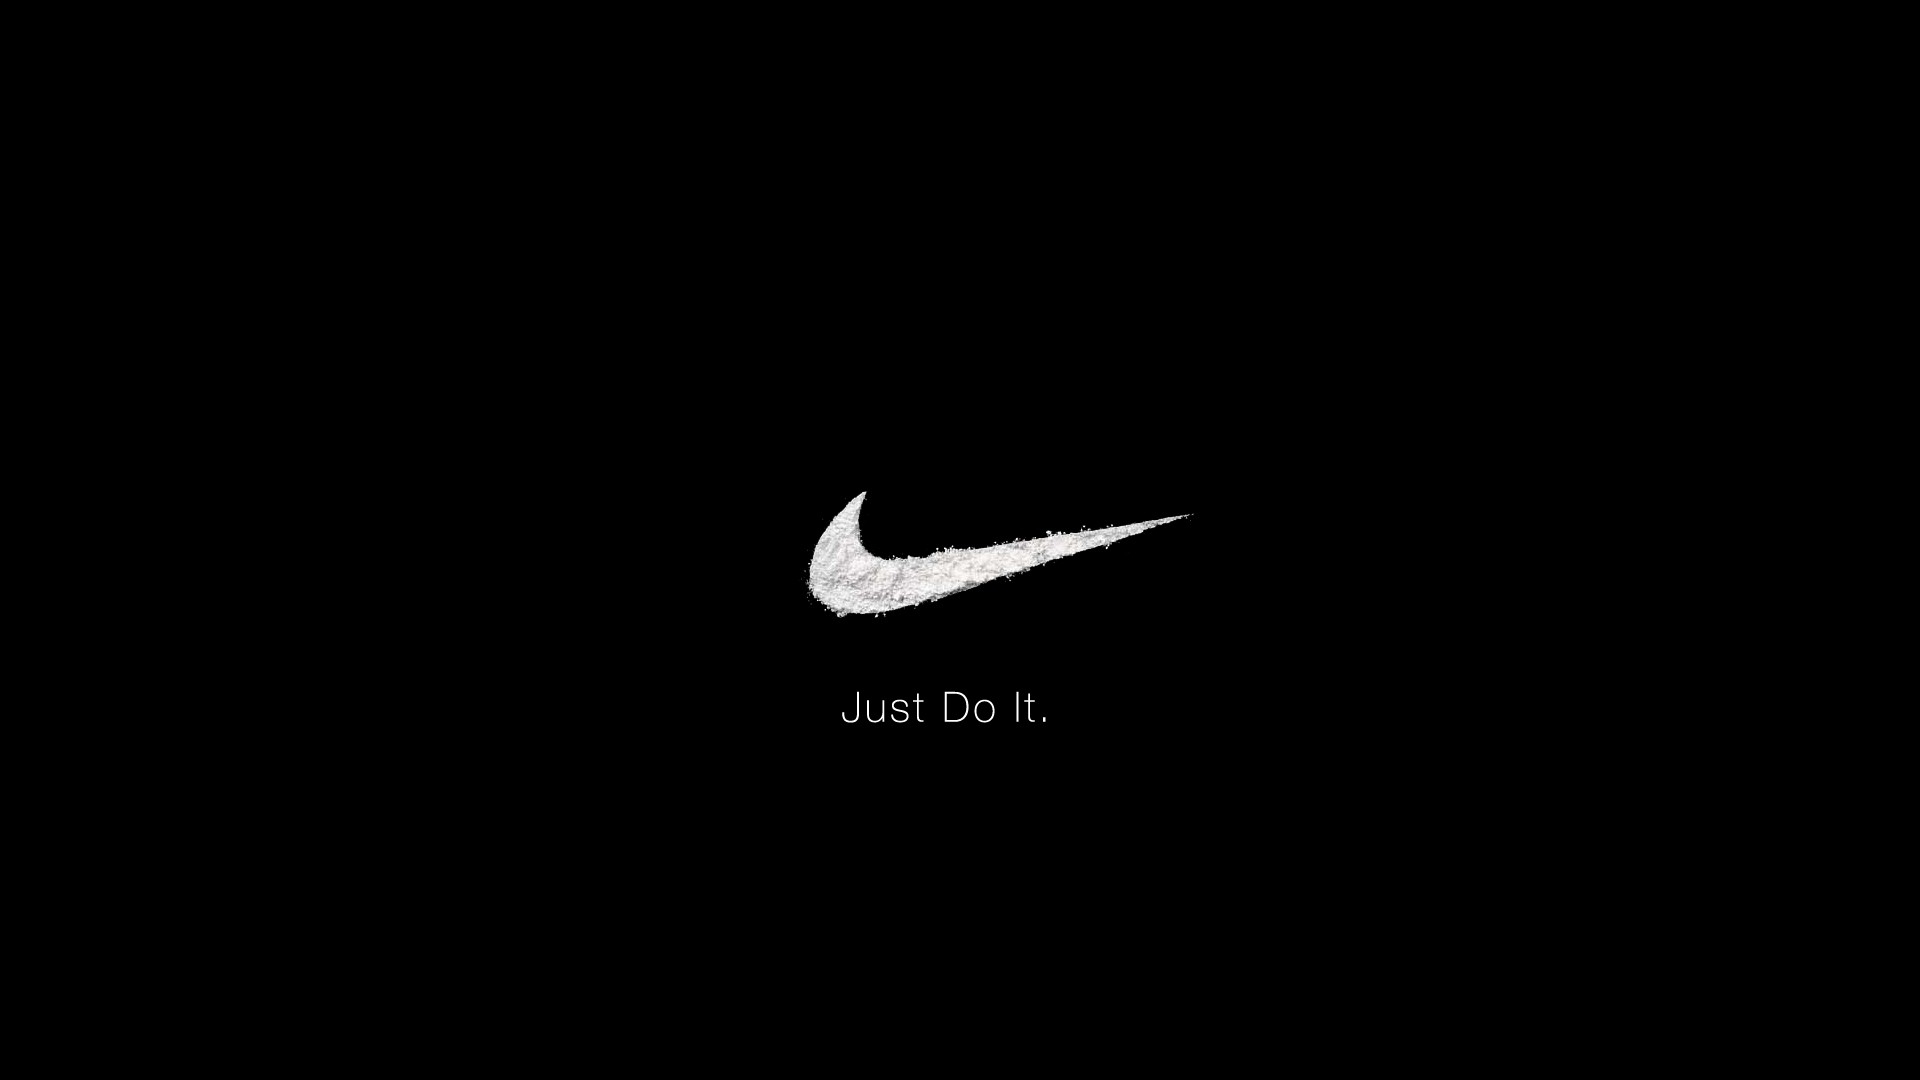 Nike just do it 4186 hd wallpaper nike just do it 4186 hd wallpaper voltagebd Choice Image